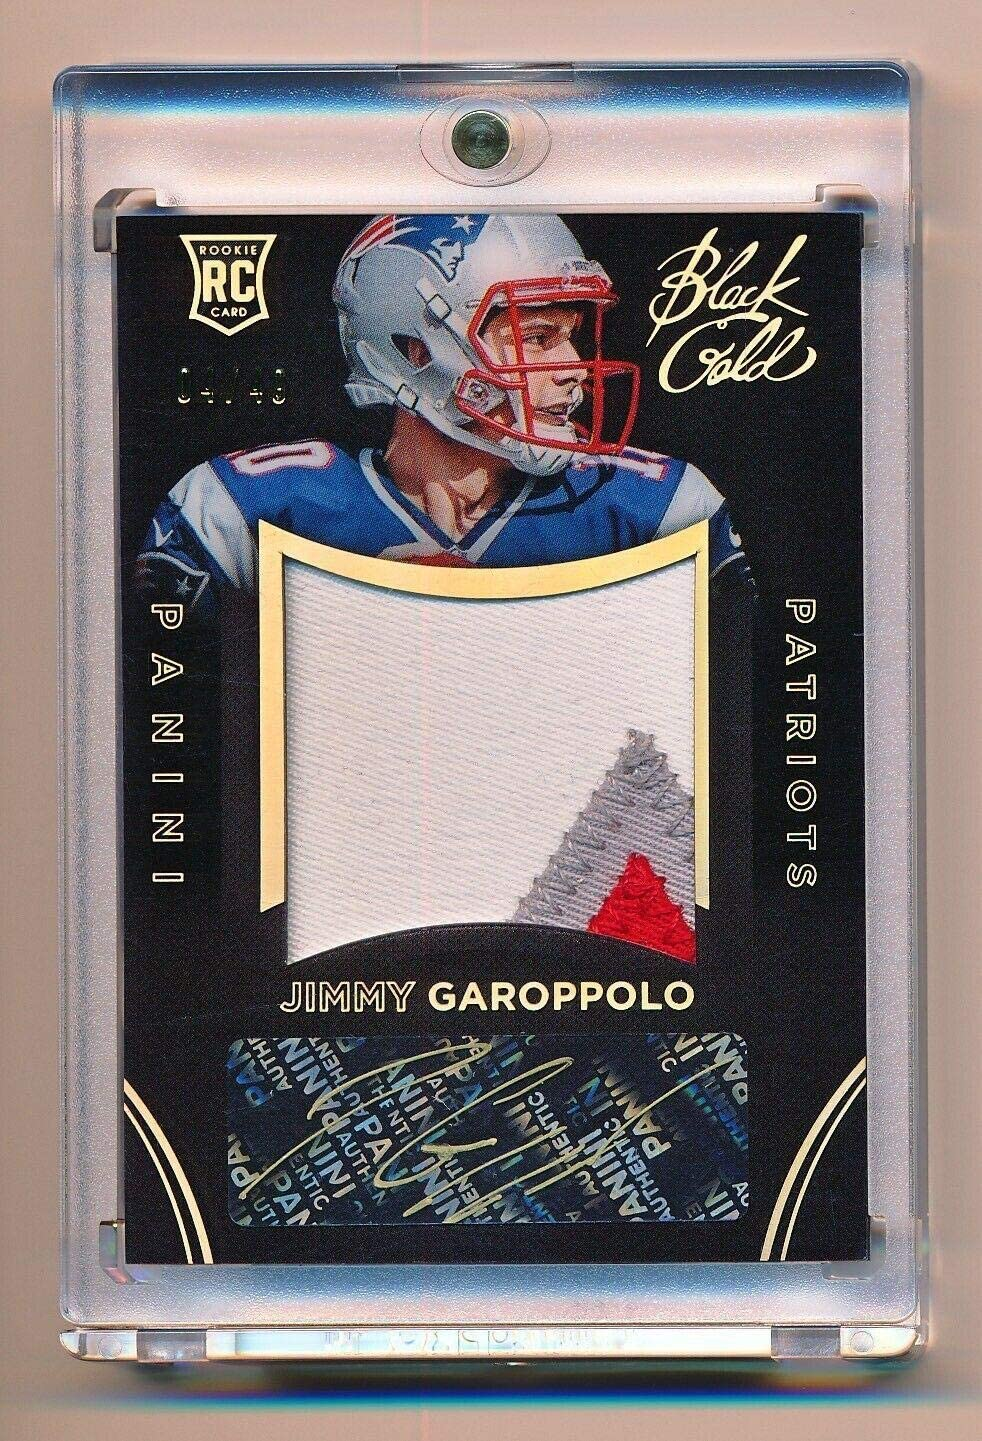 Jimmy Garoppolo 2014 Panini Black Gold Rookie Auto 3 Clr Letter Patch RC #4/49 - NFL Autographed Football Cards